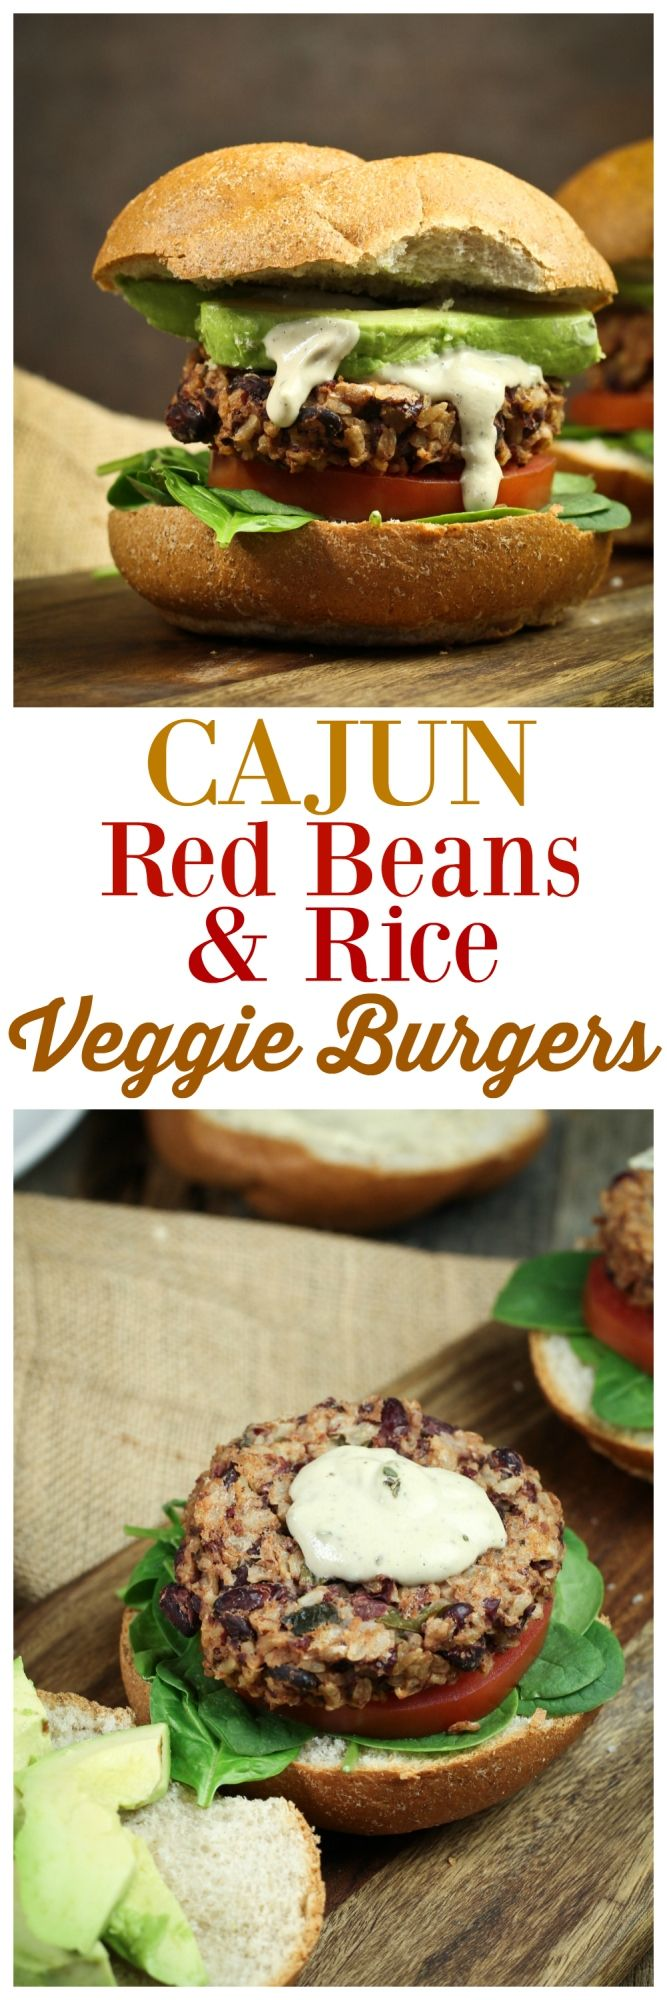 """Red Beans and Rice"" turned into a delicious, healthy, hearty veggie burger! Baked, oil-free and dang good! Topped with a Cajun Cream Sauce!"